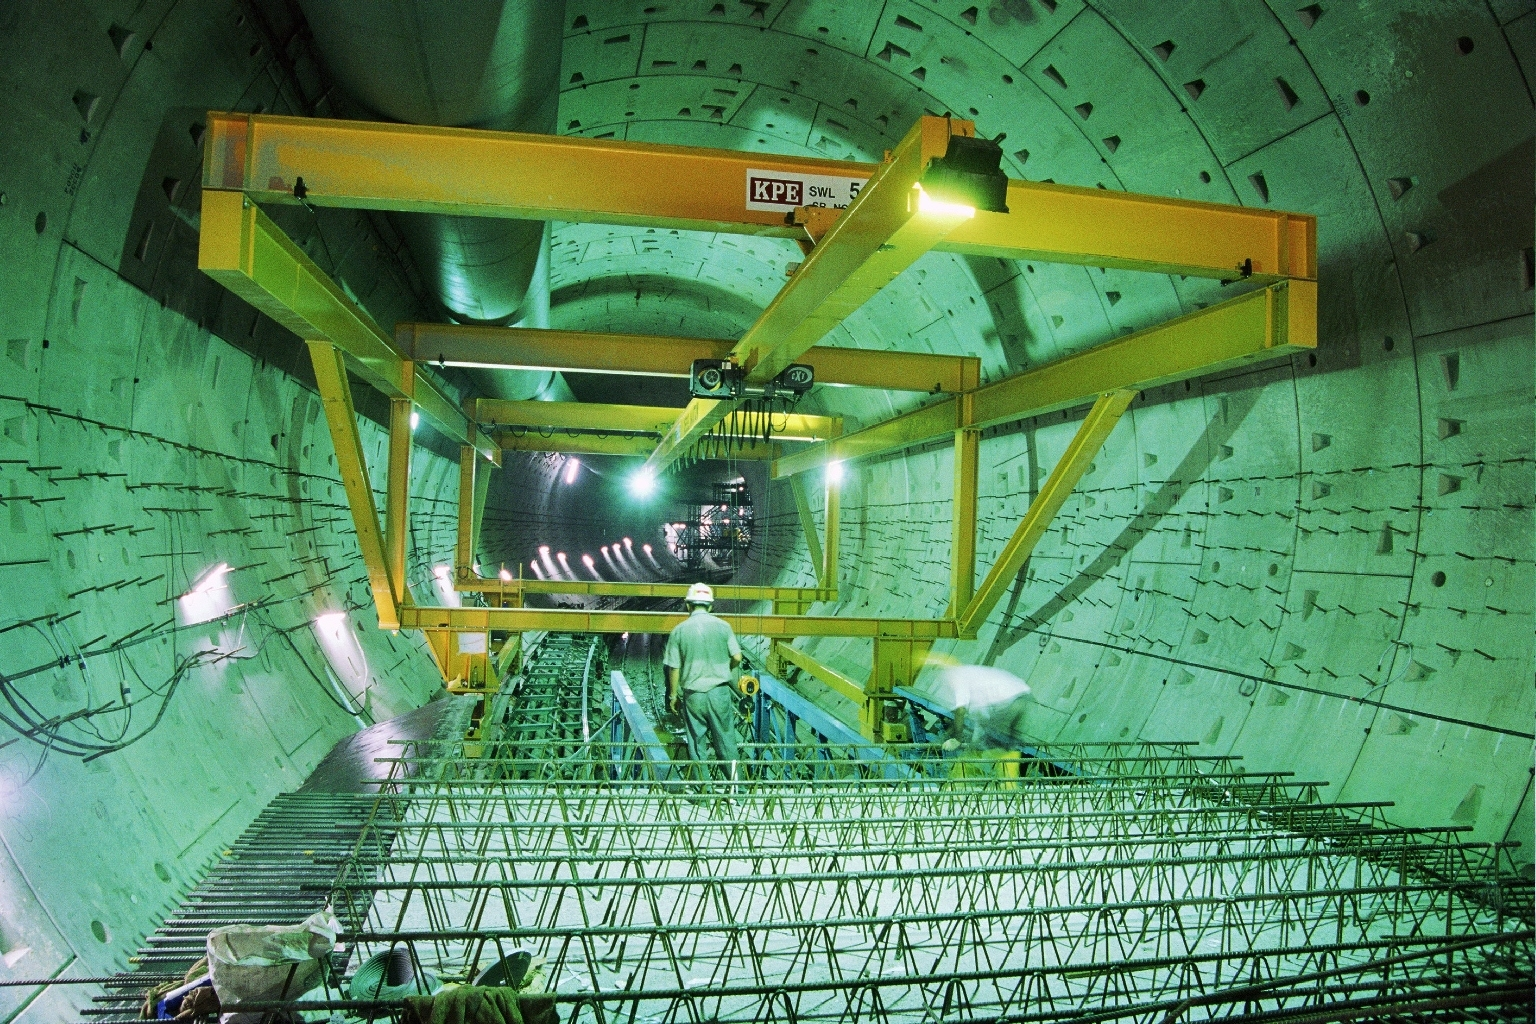 internal view of tunnel lining under construction